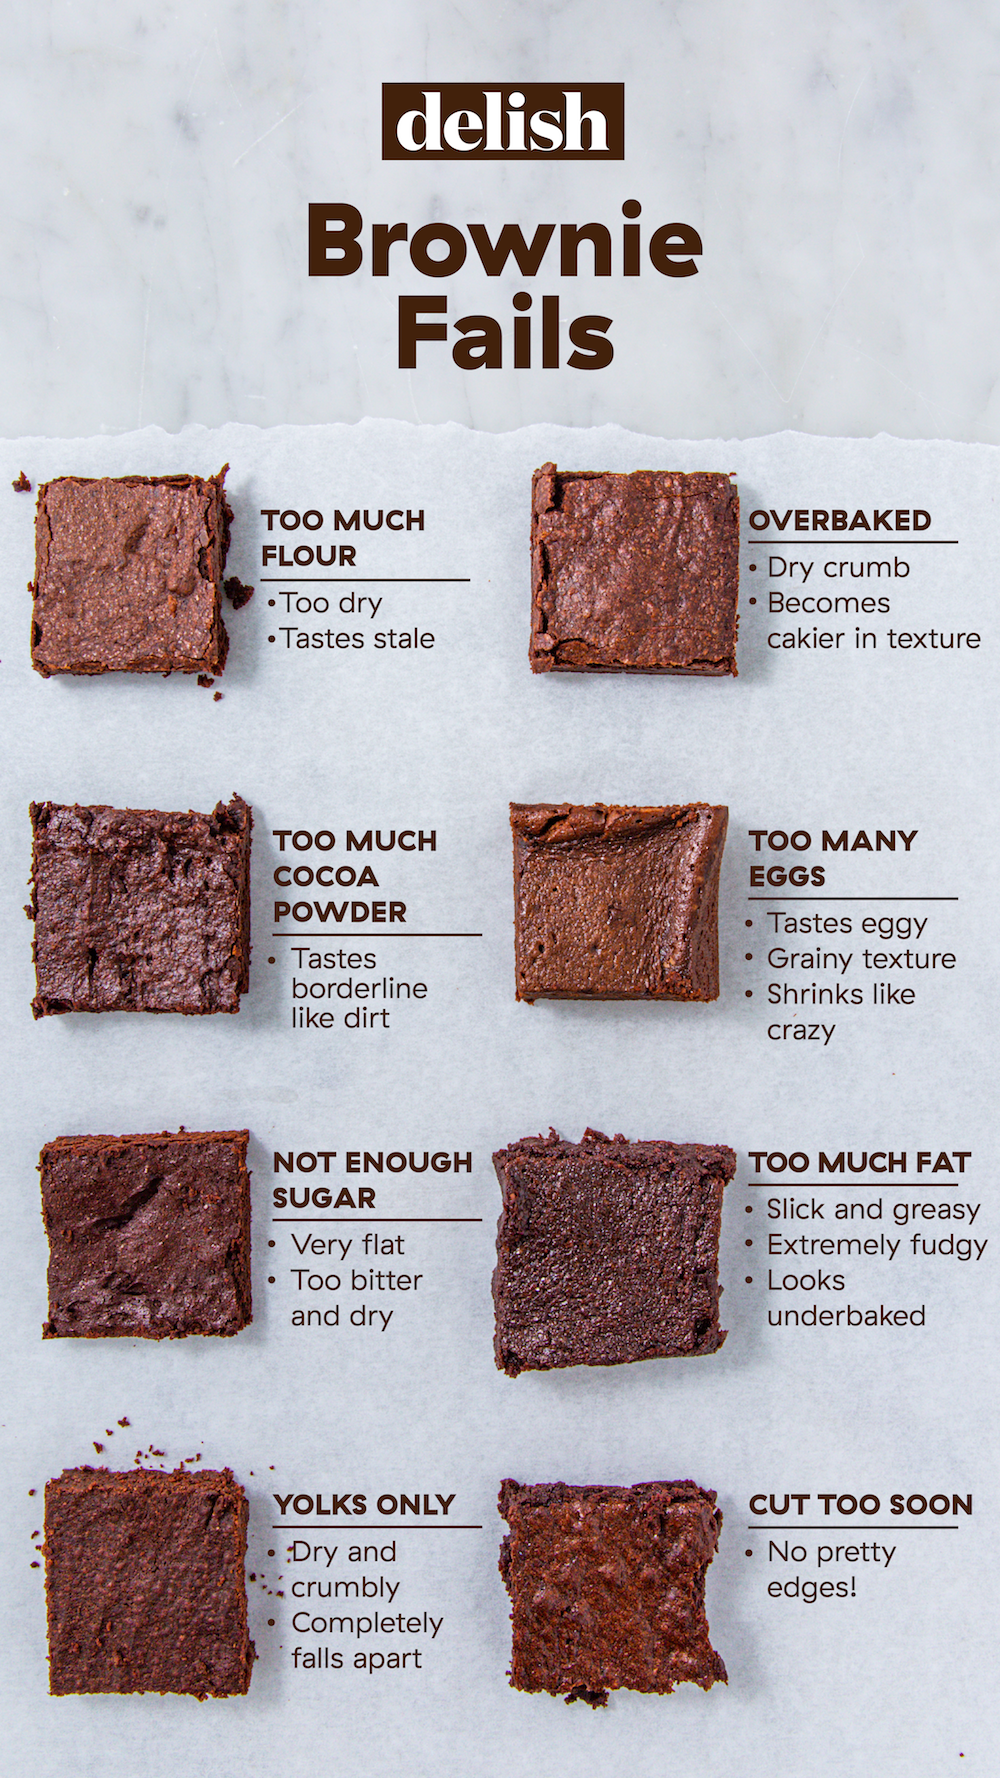 Above is our handy guide to save you from our mishaps so you can make perfect homemade (chewy, fudgy, cakey, or gluten-free!) brownies. Save it for forever and make all of our cocoa-filled misery worth it. Please? Get the full details at Delish.com. #delish #easy #brownie #browniefails #chart #cheatsheet #Info #infographic #whatnottodo